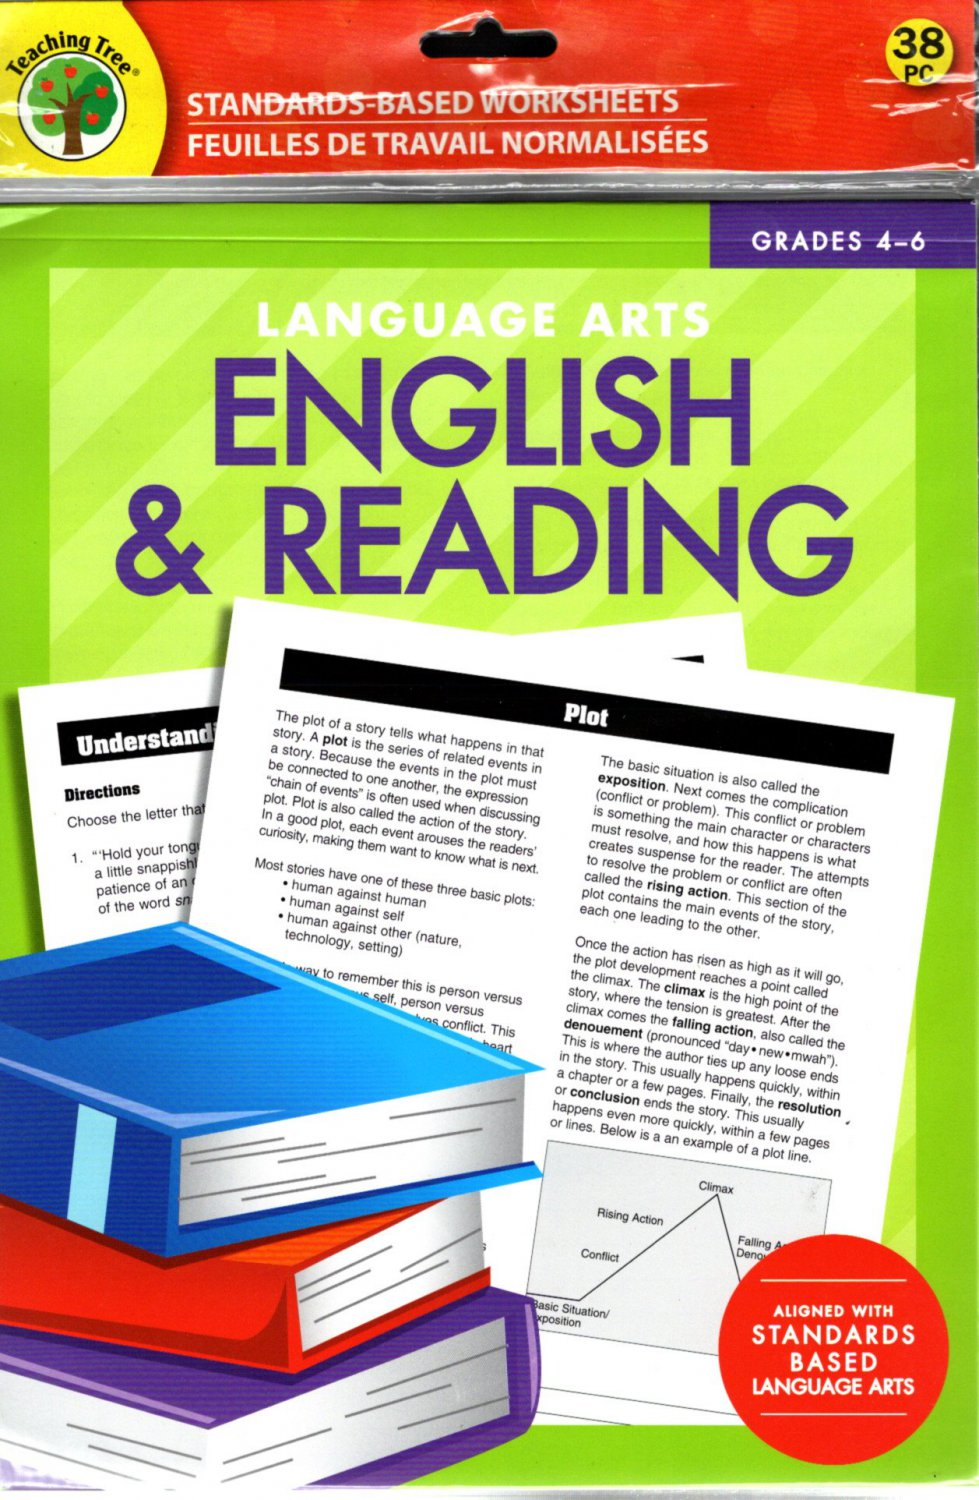 Language Arts - English & Reading - Aligned with Standards Based Social Studies - Grades 4 - 6